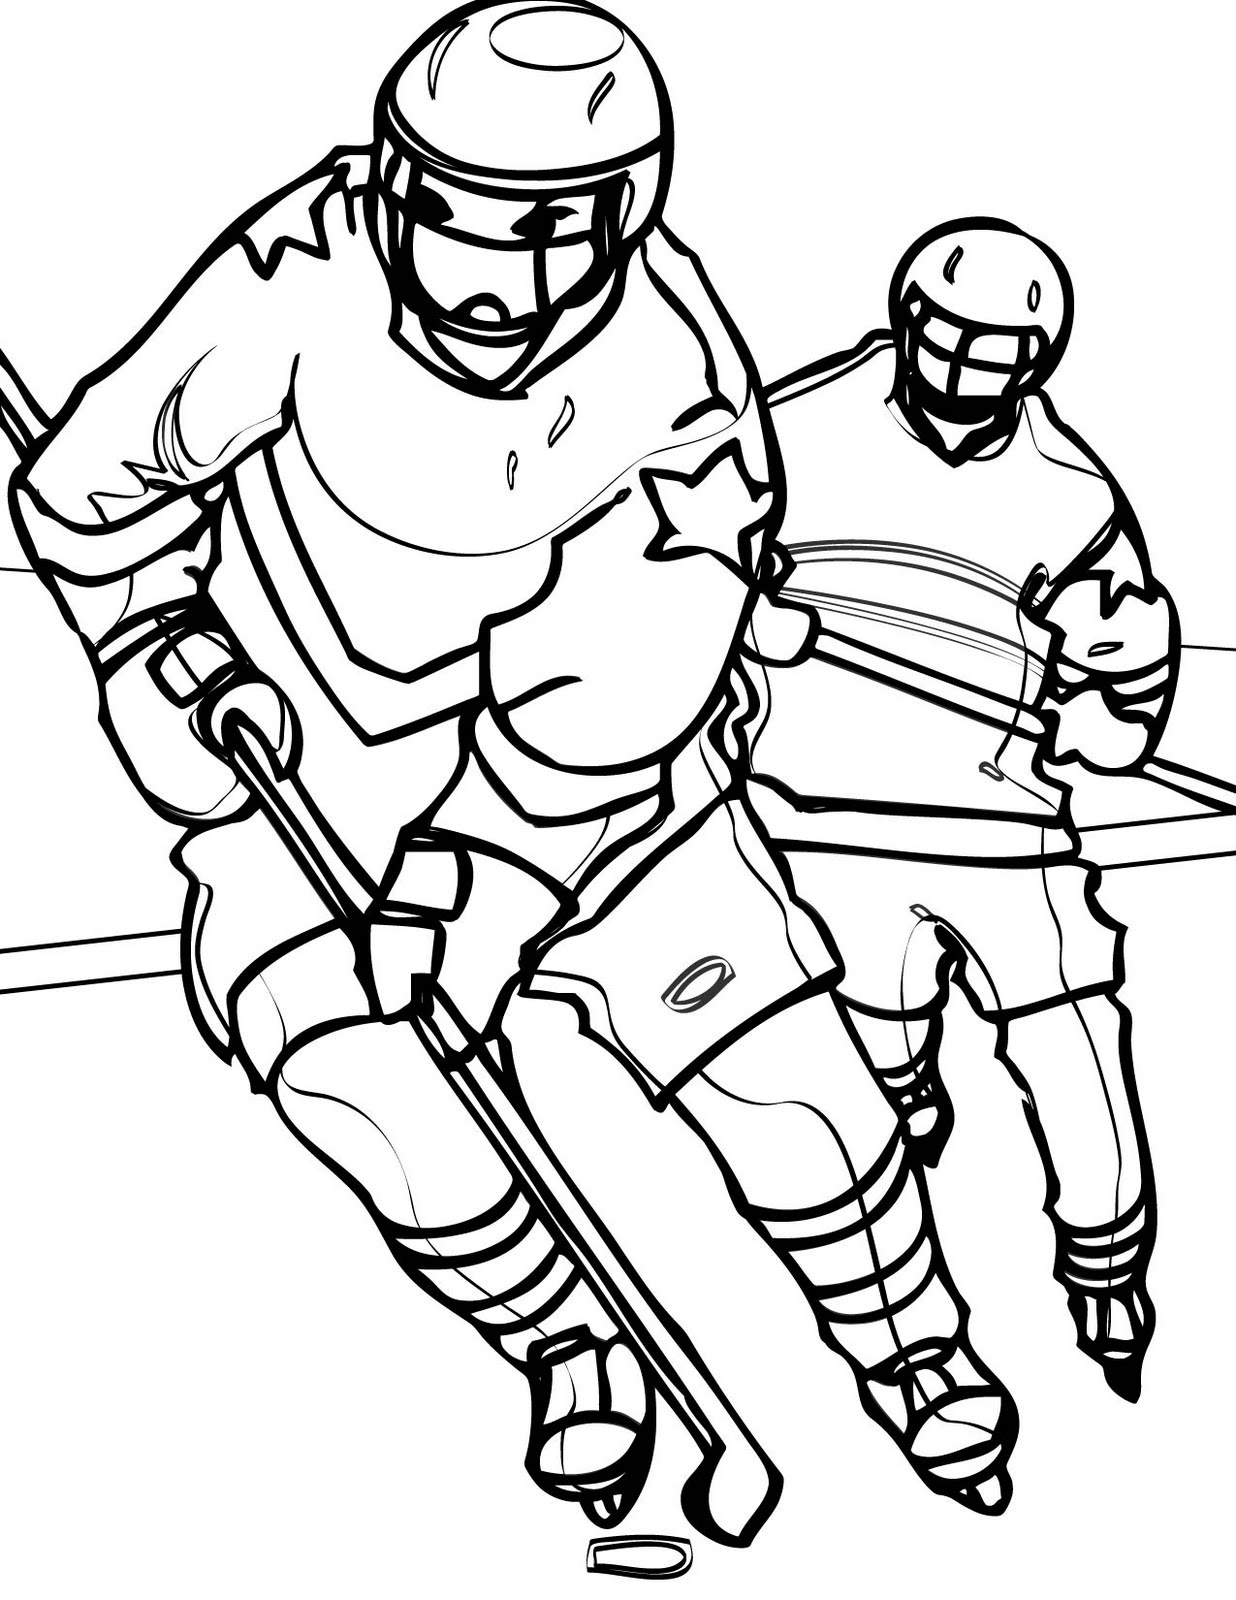 Hockey coloring pages learn to coloring for Hockey coloring pages printable